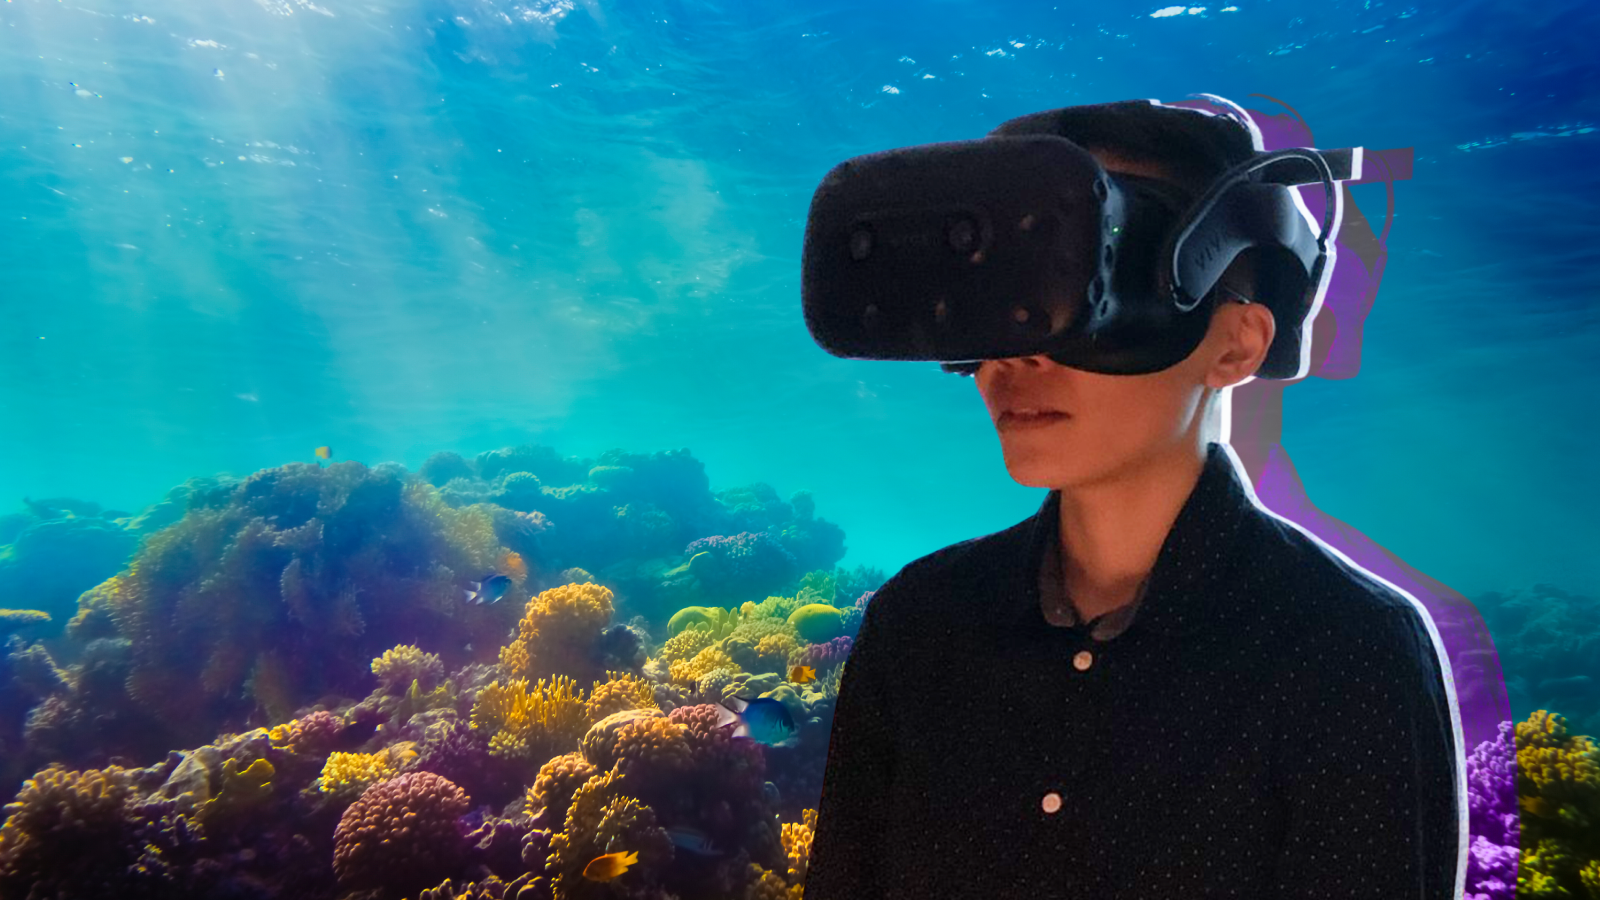 A young student wearing VR goggles, overtop of a coral reef background